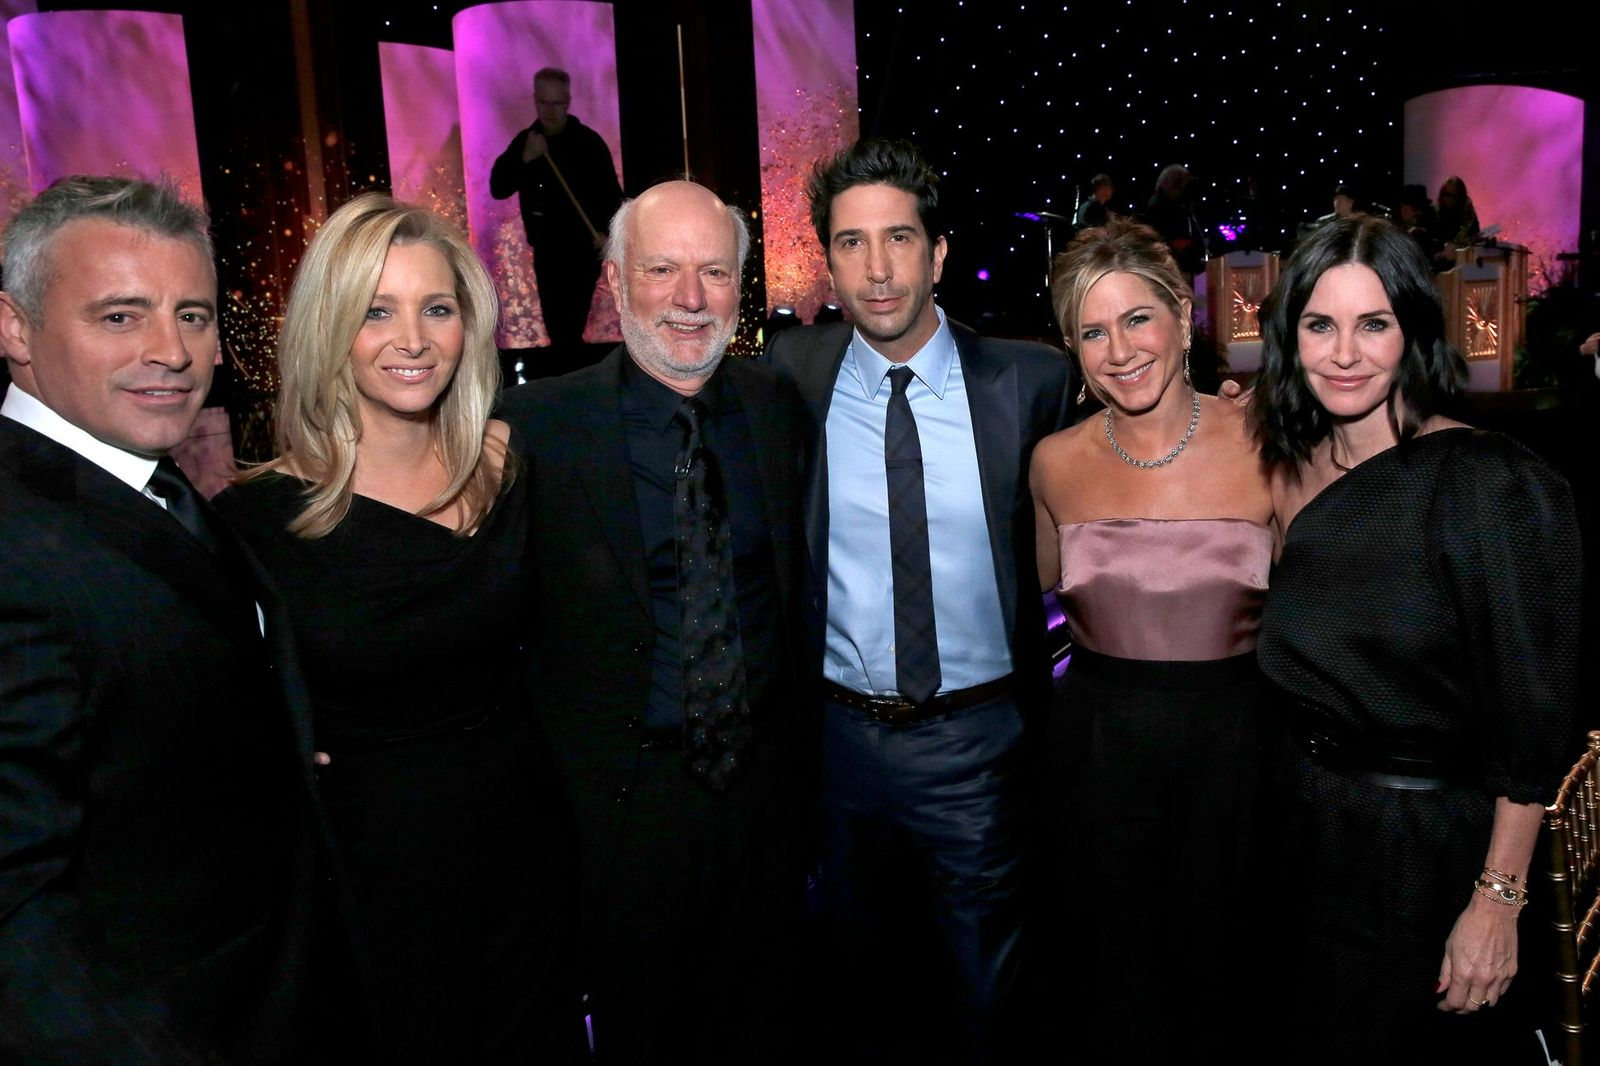 MUST SEE TV: AN ALL-STAR TRIBUTE TO JAMES BURROWS -- Pictured: (l-r) Matt LeBlanc, Lisa Kudrow, James Burrows, David Schwimmer, Jennifer Aniston, Courteney Cox -- (Photo by: Chris Haston/NBCU Photo Bank/NBCUniversal via Getty Images via Getty Images)